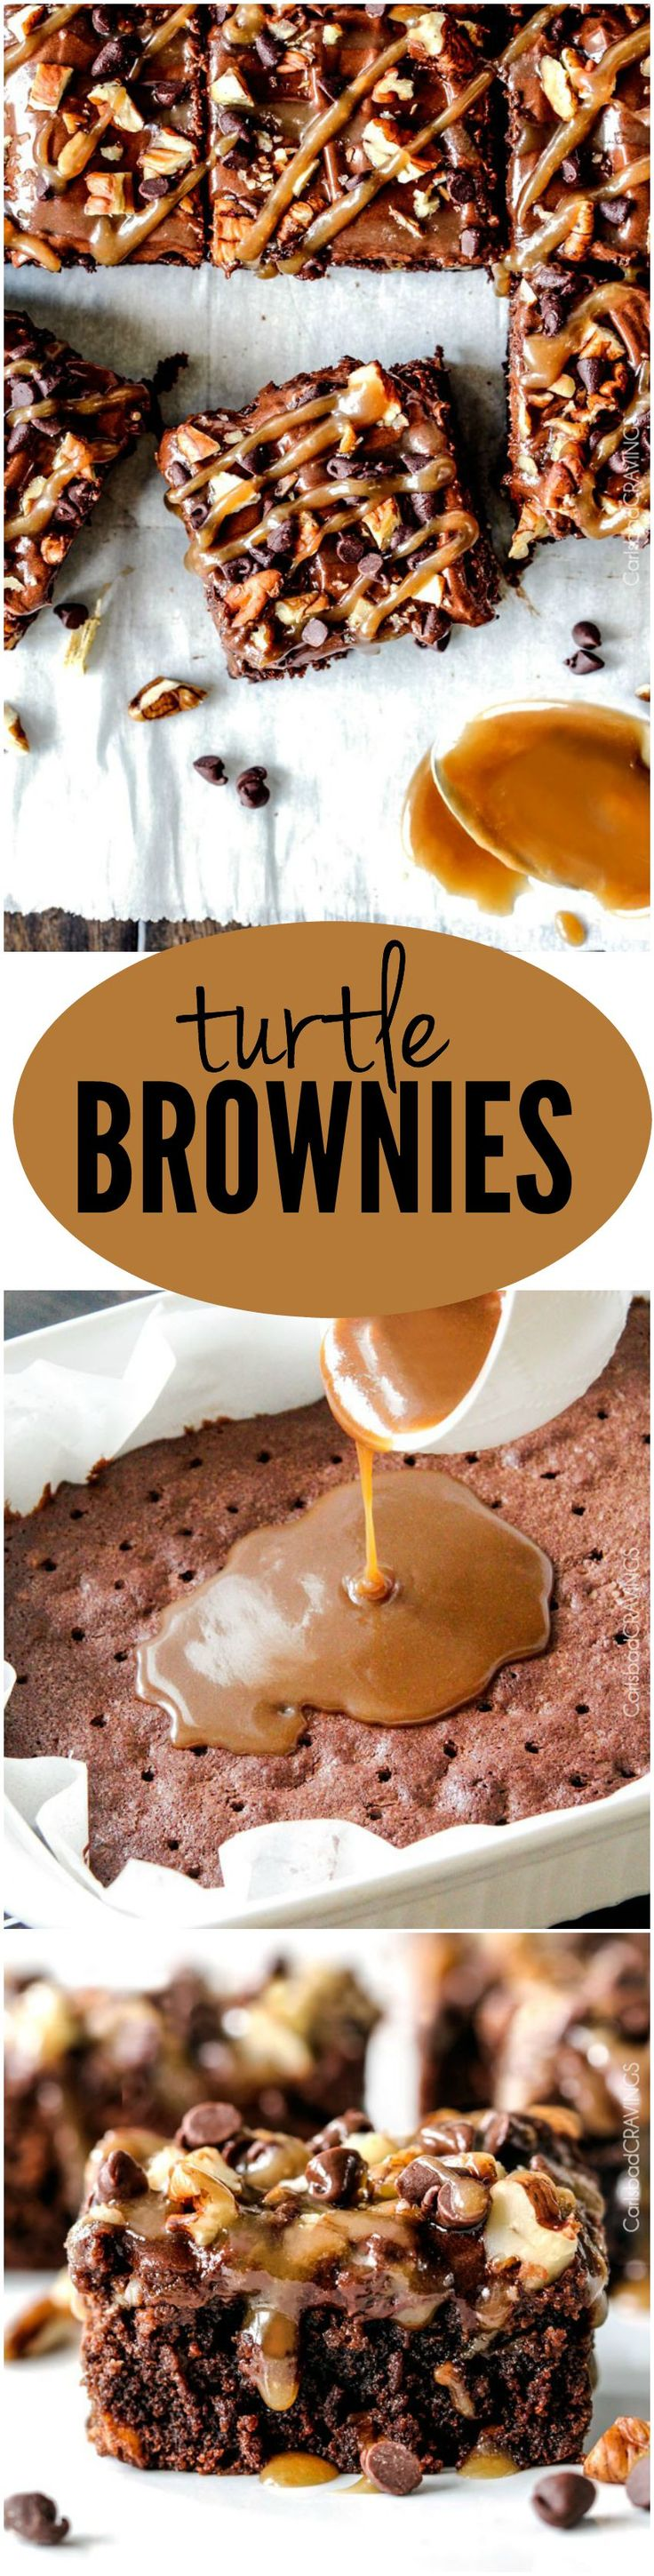 Crazy moist Poke Turtle Brownies seeping with pockets of caramel, infused with pecans and chocolate chips, smothered in the BEST chocolate frosting and topped with more caramel. AKA heaven.